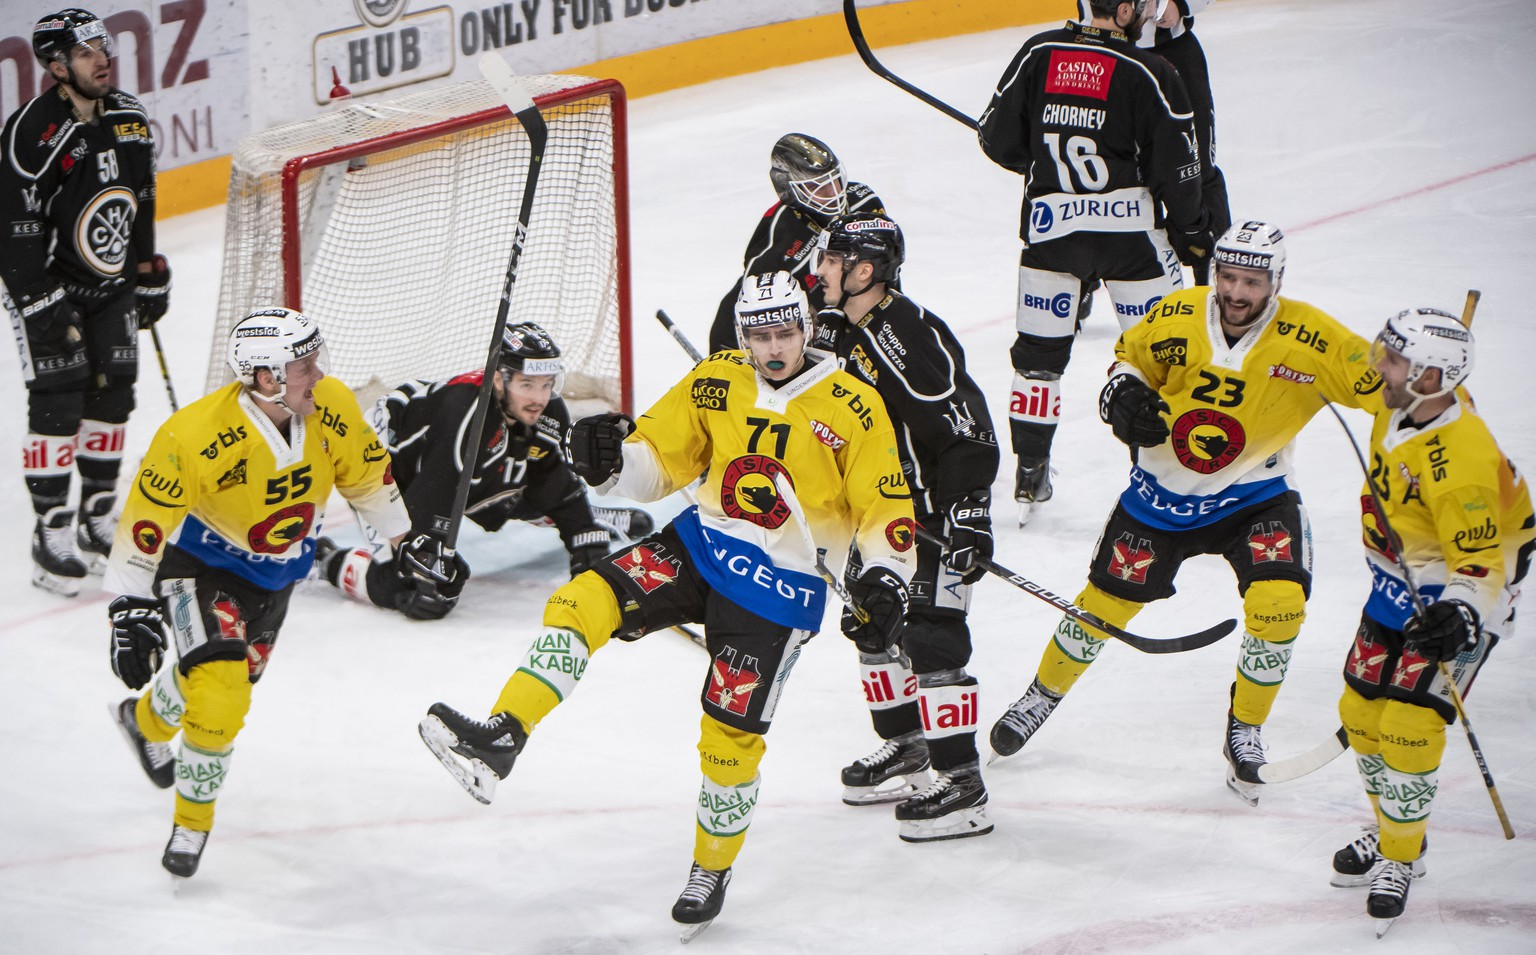 Bern's player Jeremi Gerber, celebrate 0-1 gool , during the preliminary round game of National League A (NLA) Swiss Championship 2019/20 between HC Lugano and SC Bern at the ice stadium Corner Arena in Lugano, Switzerland, Saturday,  February 22, 2020. (KEYSTONE/Ti-Press/Pablo Gianinazzi)